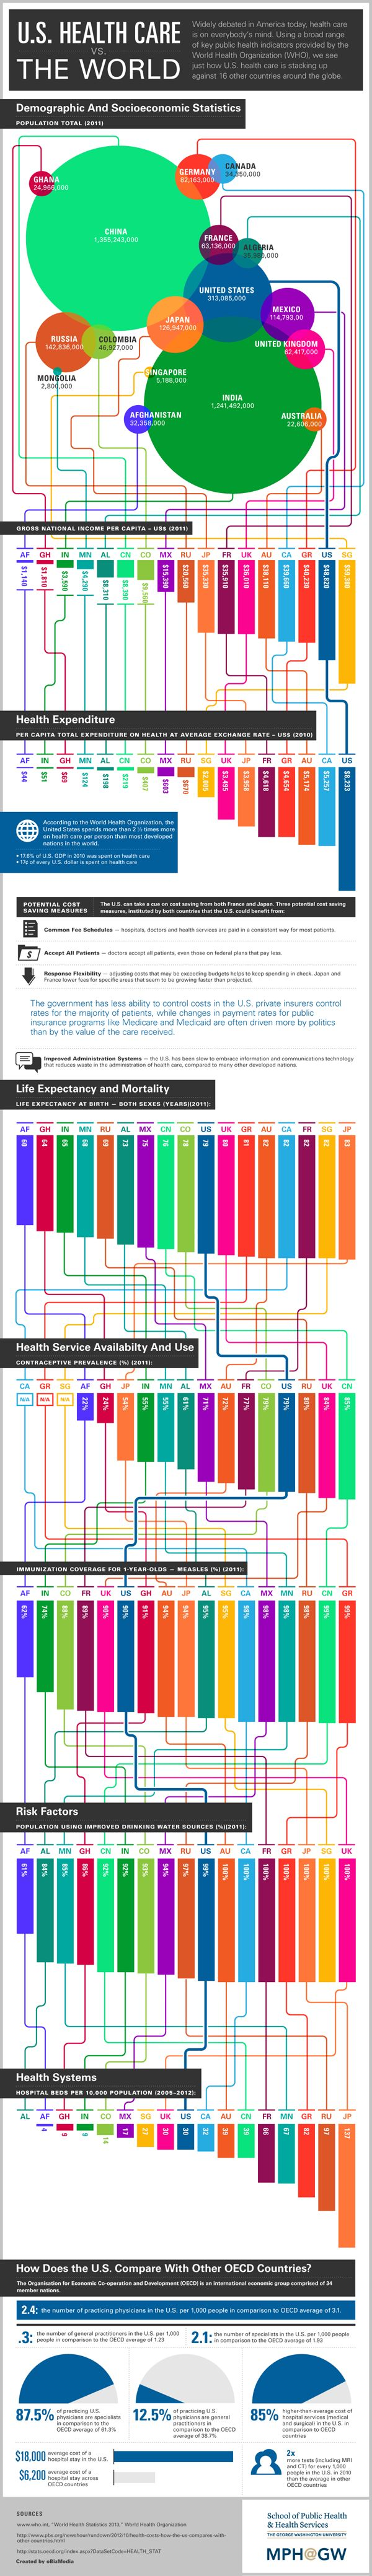 To help clarify the differences between world health care systemss around the world. The data is provide by the #WHO statistics 2013 report #healtheconomics